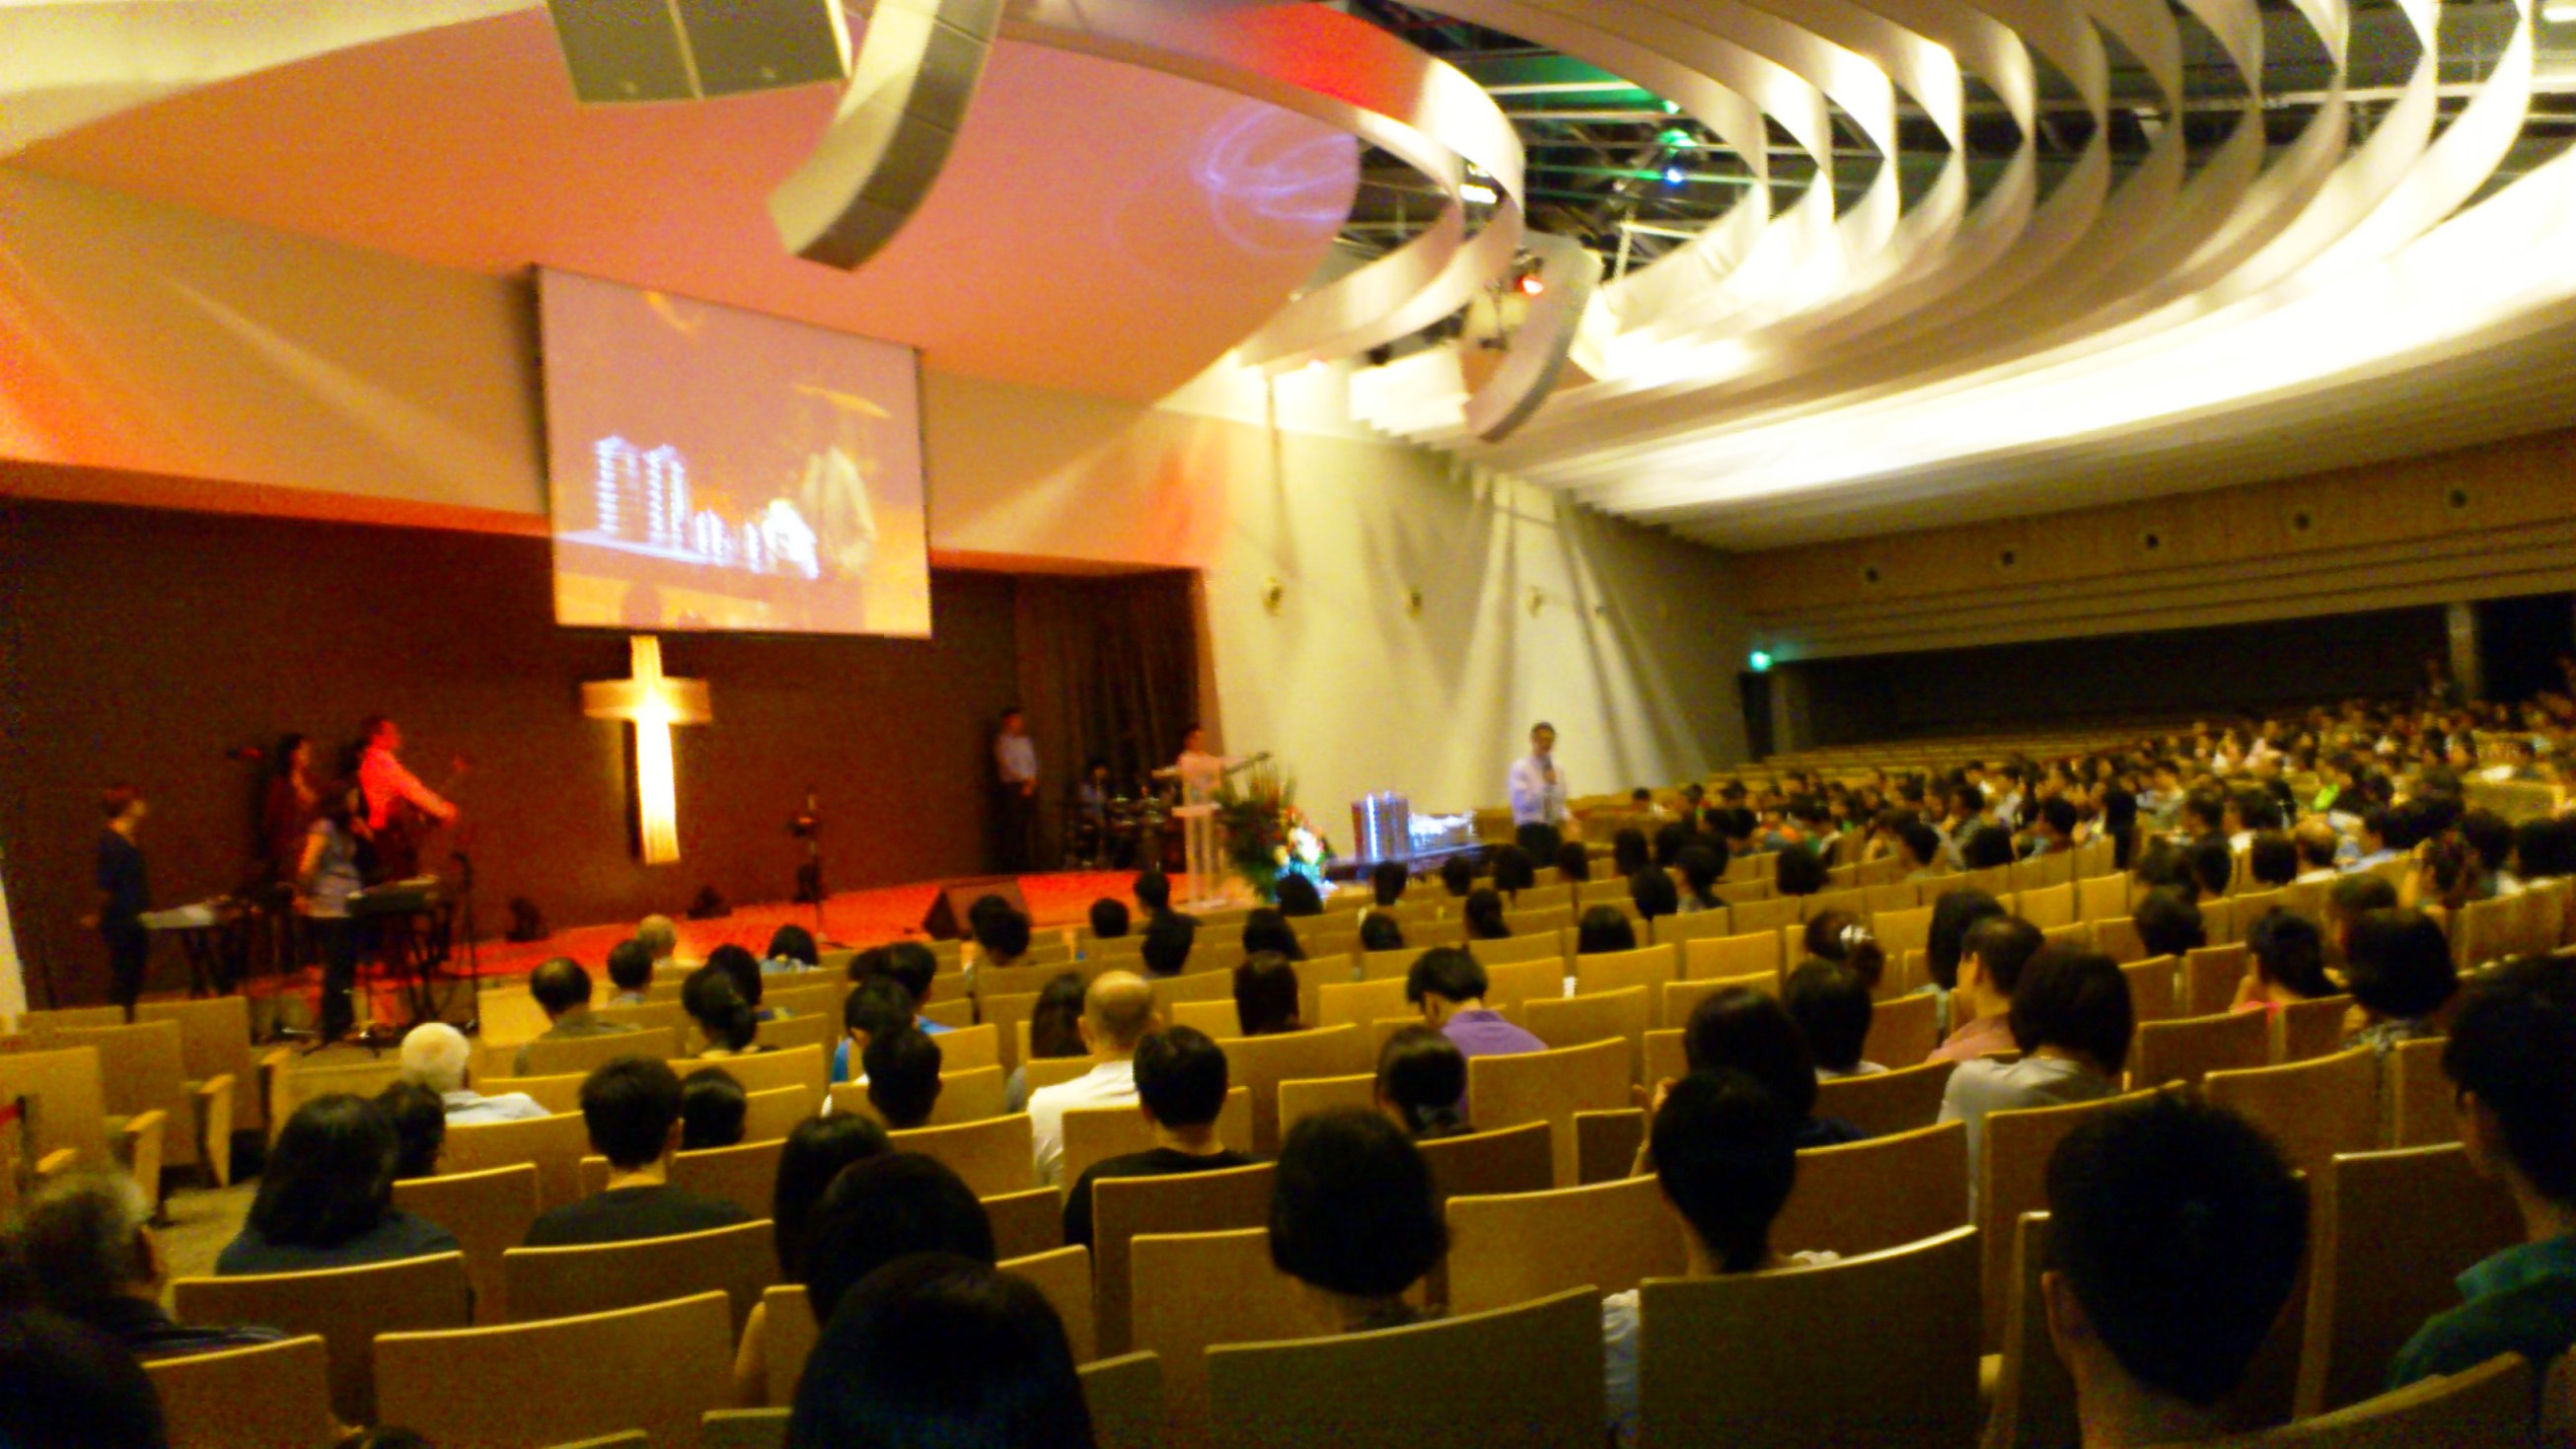 Woodlands Evangelical Free Church: shining light in the ...